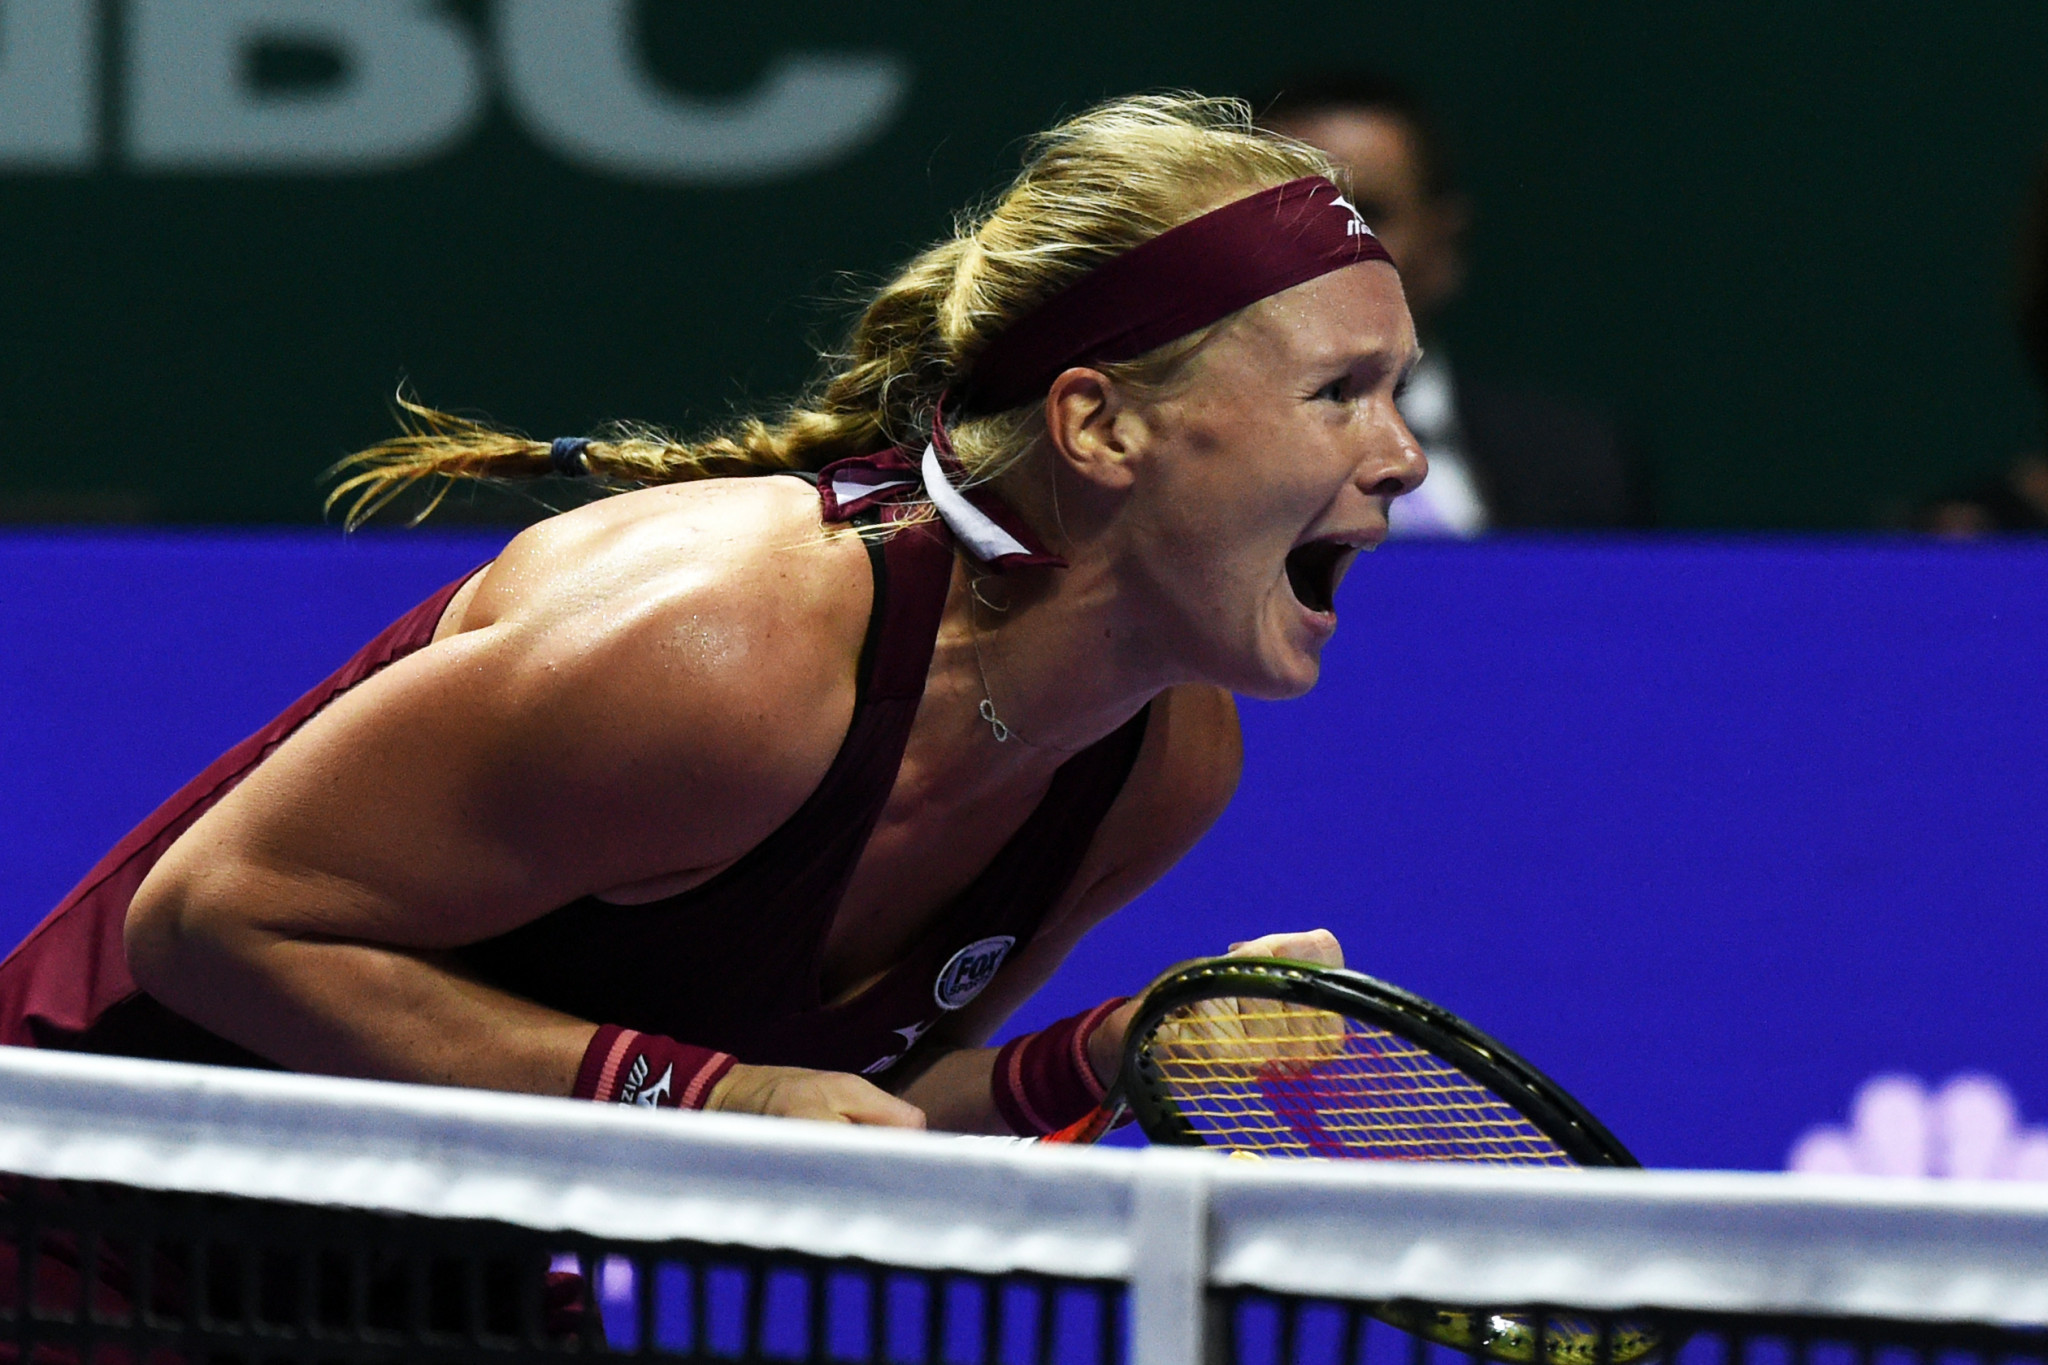 Bertens stuns Kerber in debut WTA Finals match after late call-up